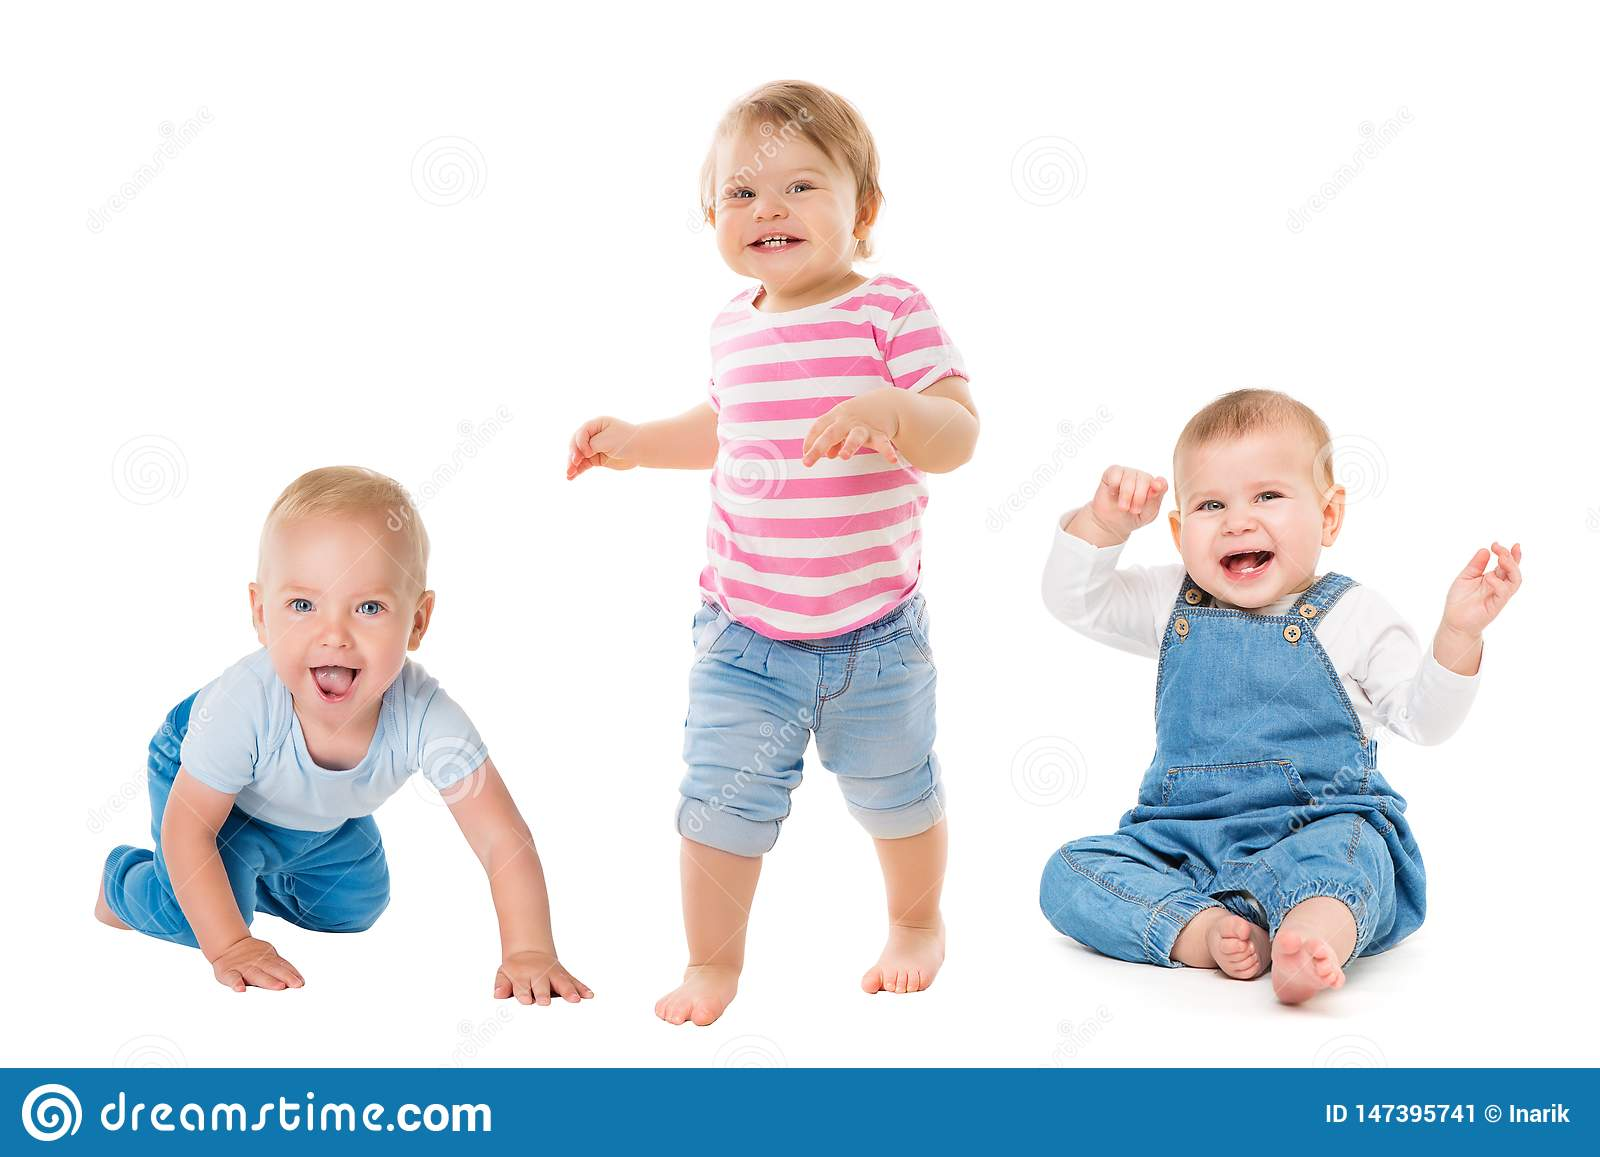 Babies Boys Girls, Crawling Sitting Standing Infant Kids, Growing Toddlers Children Group Isolated on White